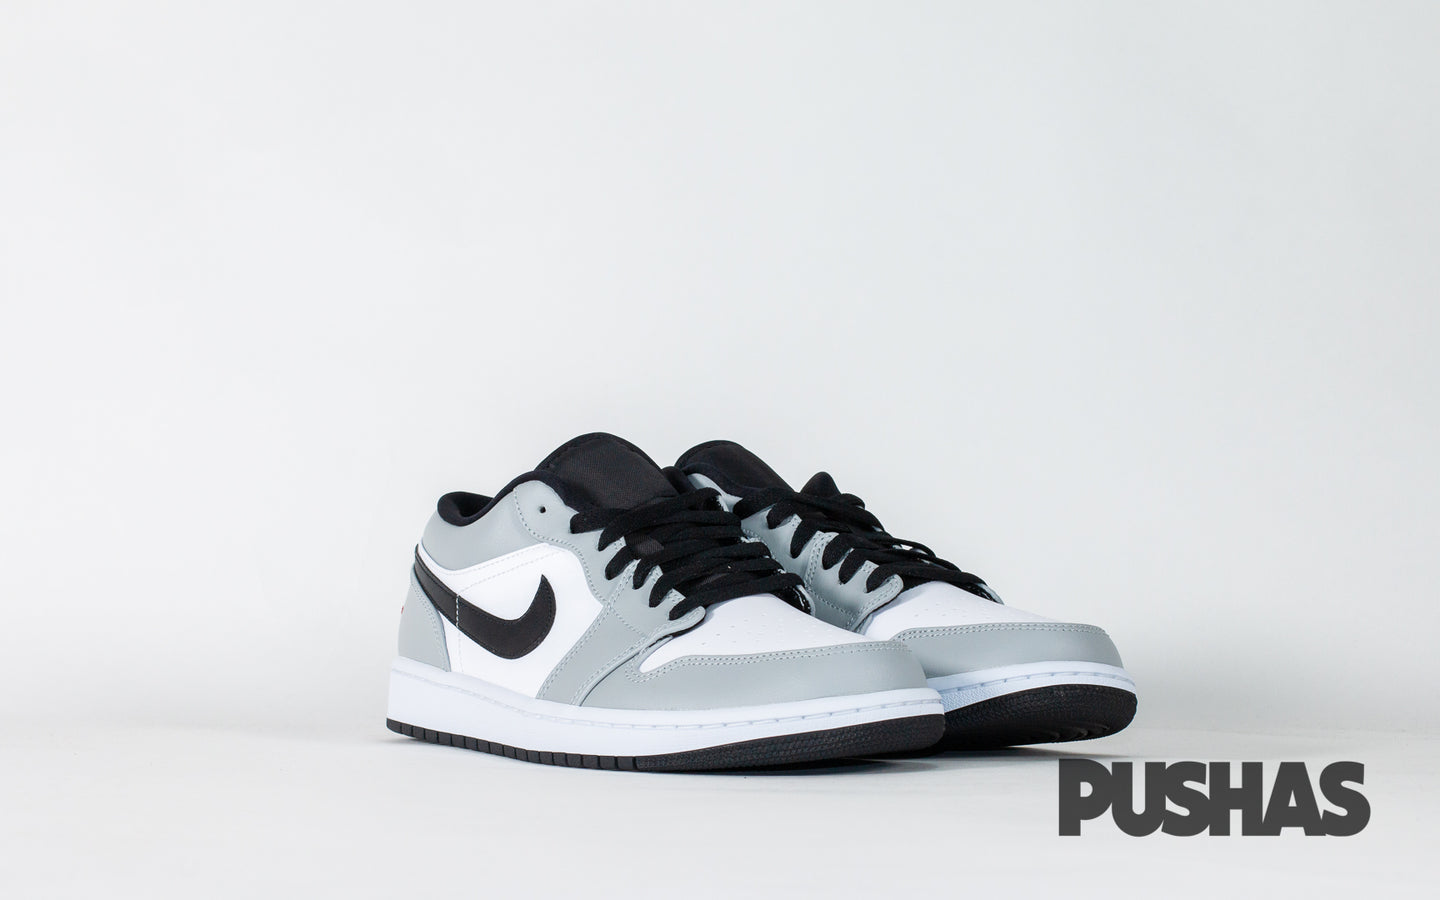 pushas-nike-Air-Jordan-1-Low-Light-Smoke-Grey